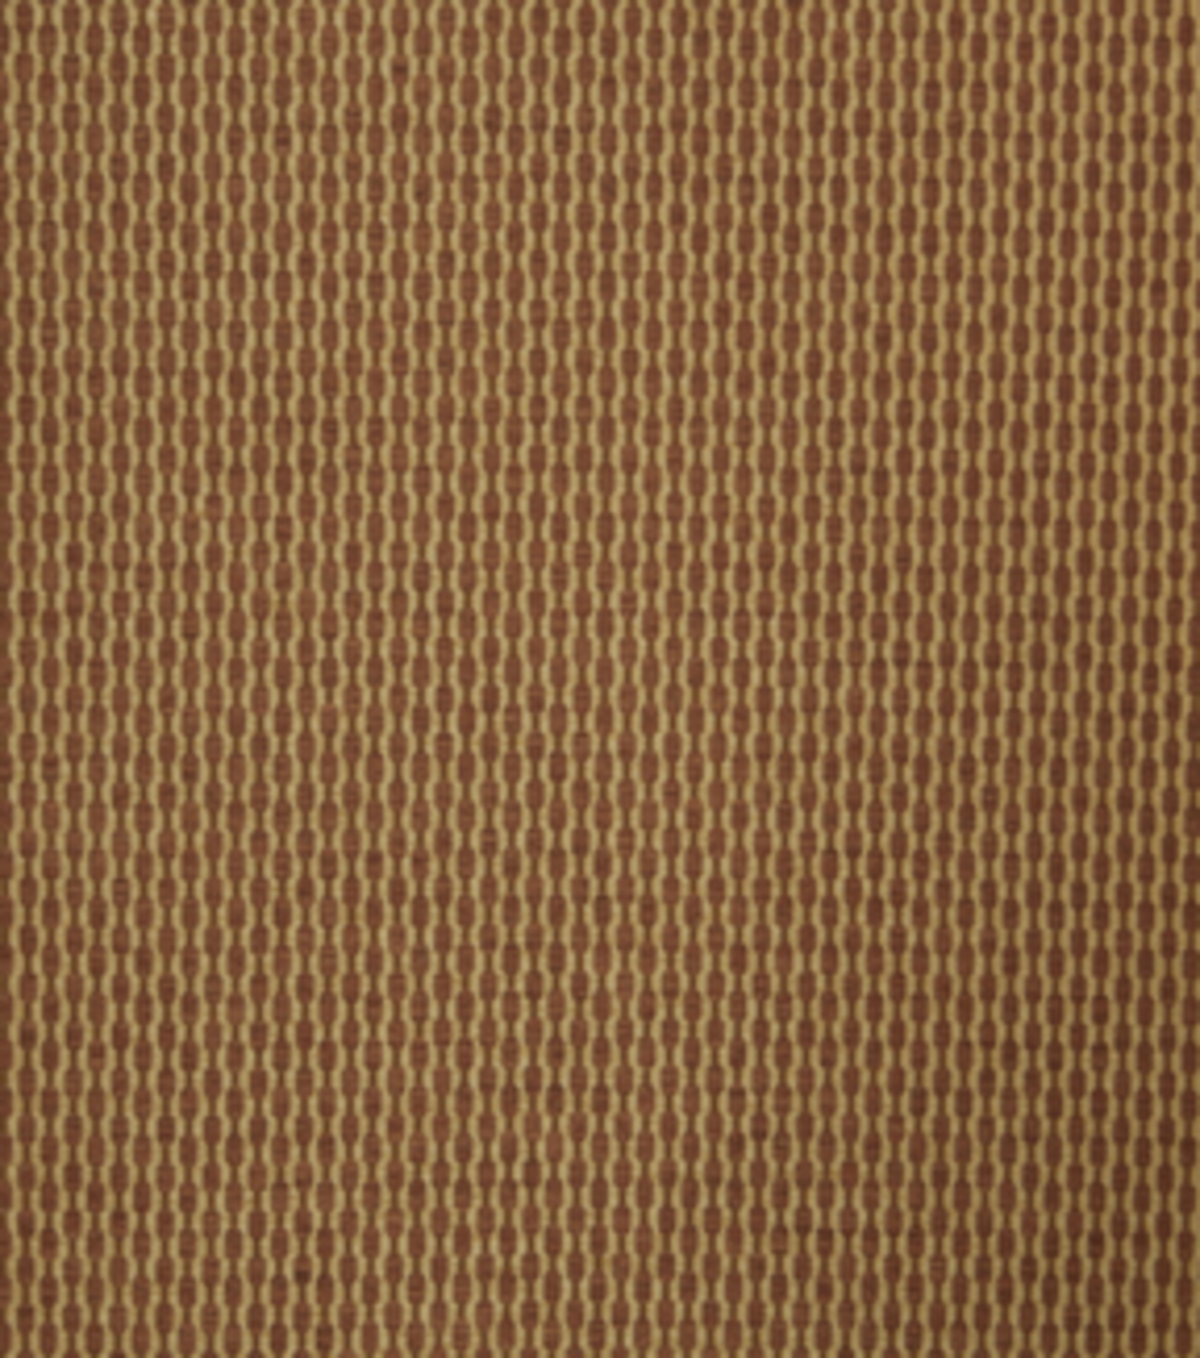 Home Decor 8\u0022x8\u0022 Fabric Swatch-Eaton Square Notorious Spice